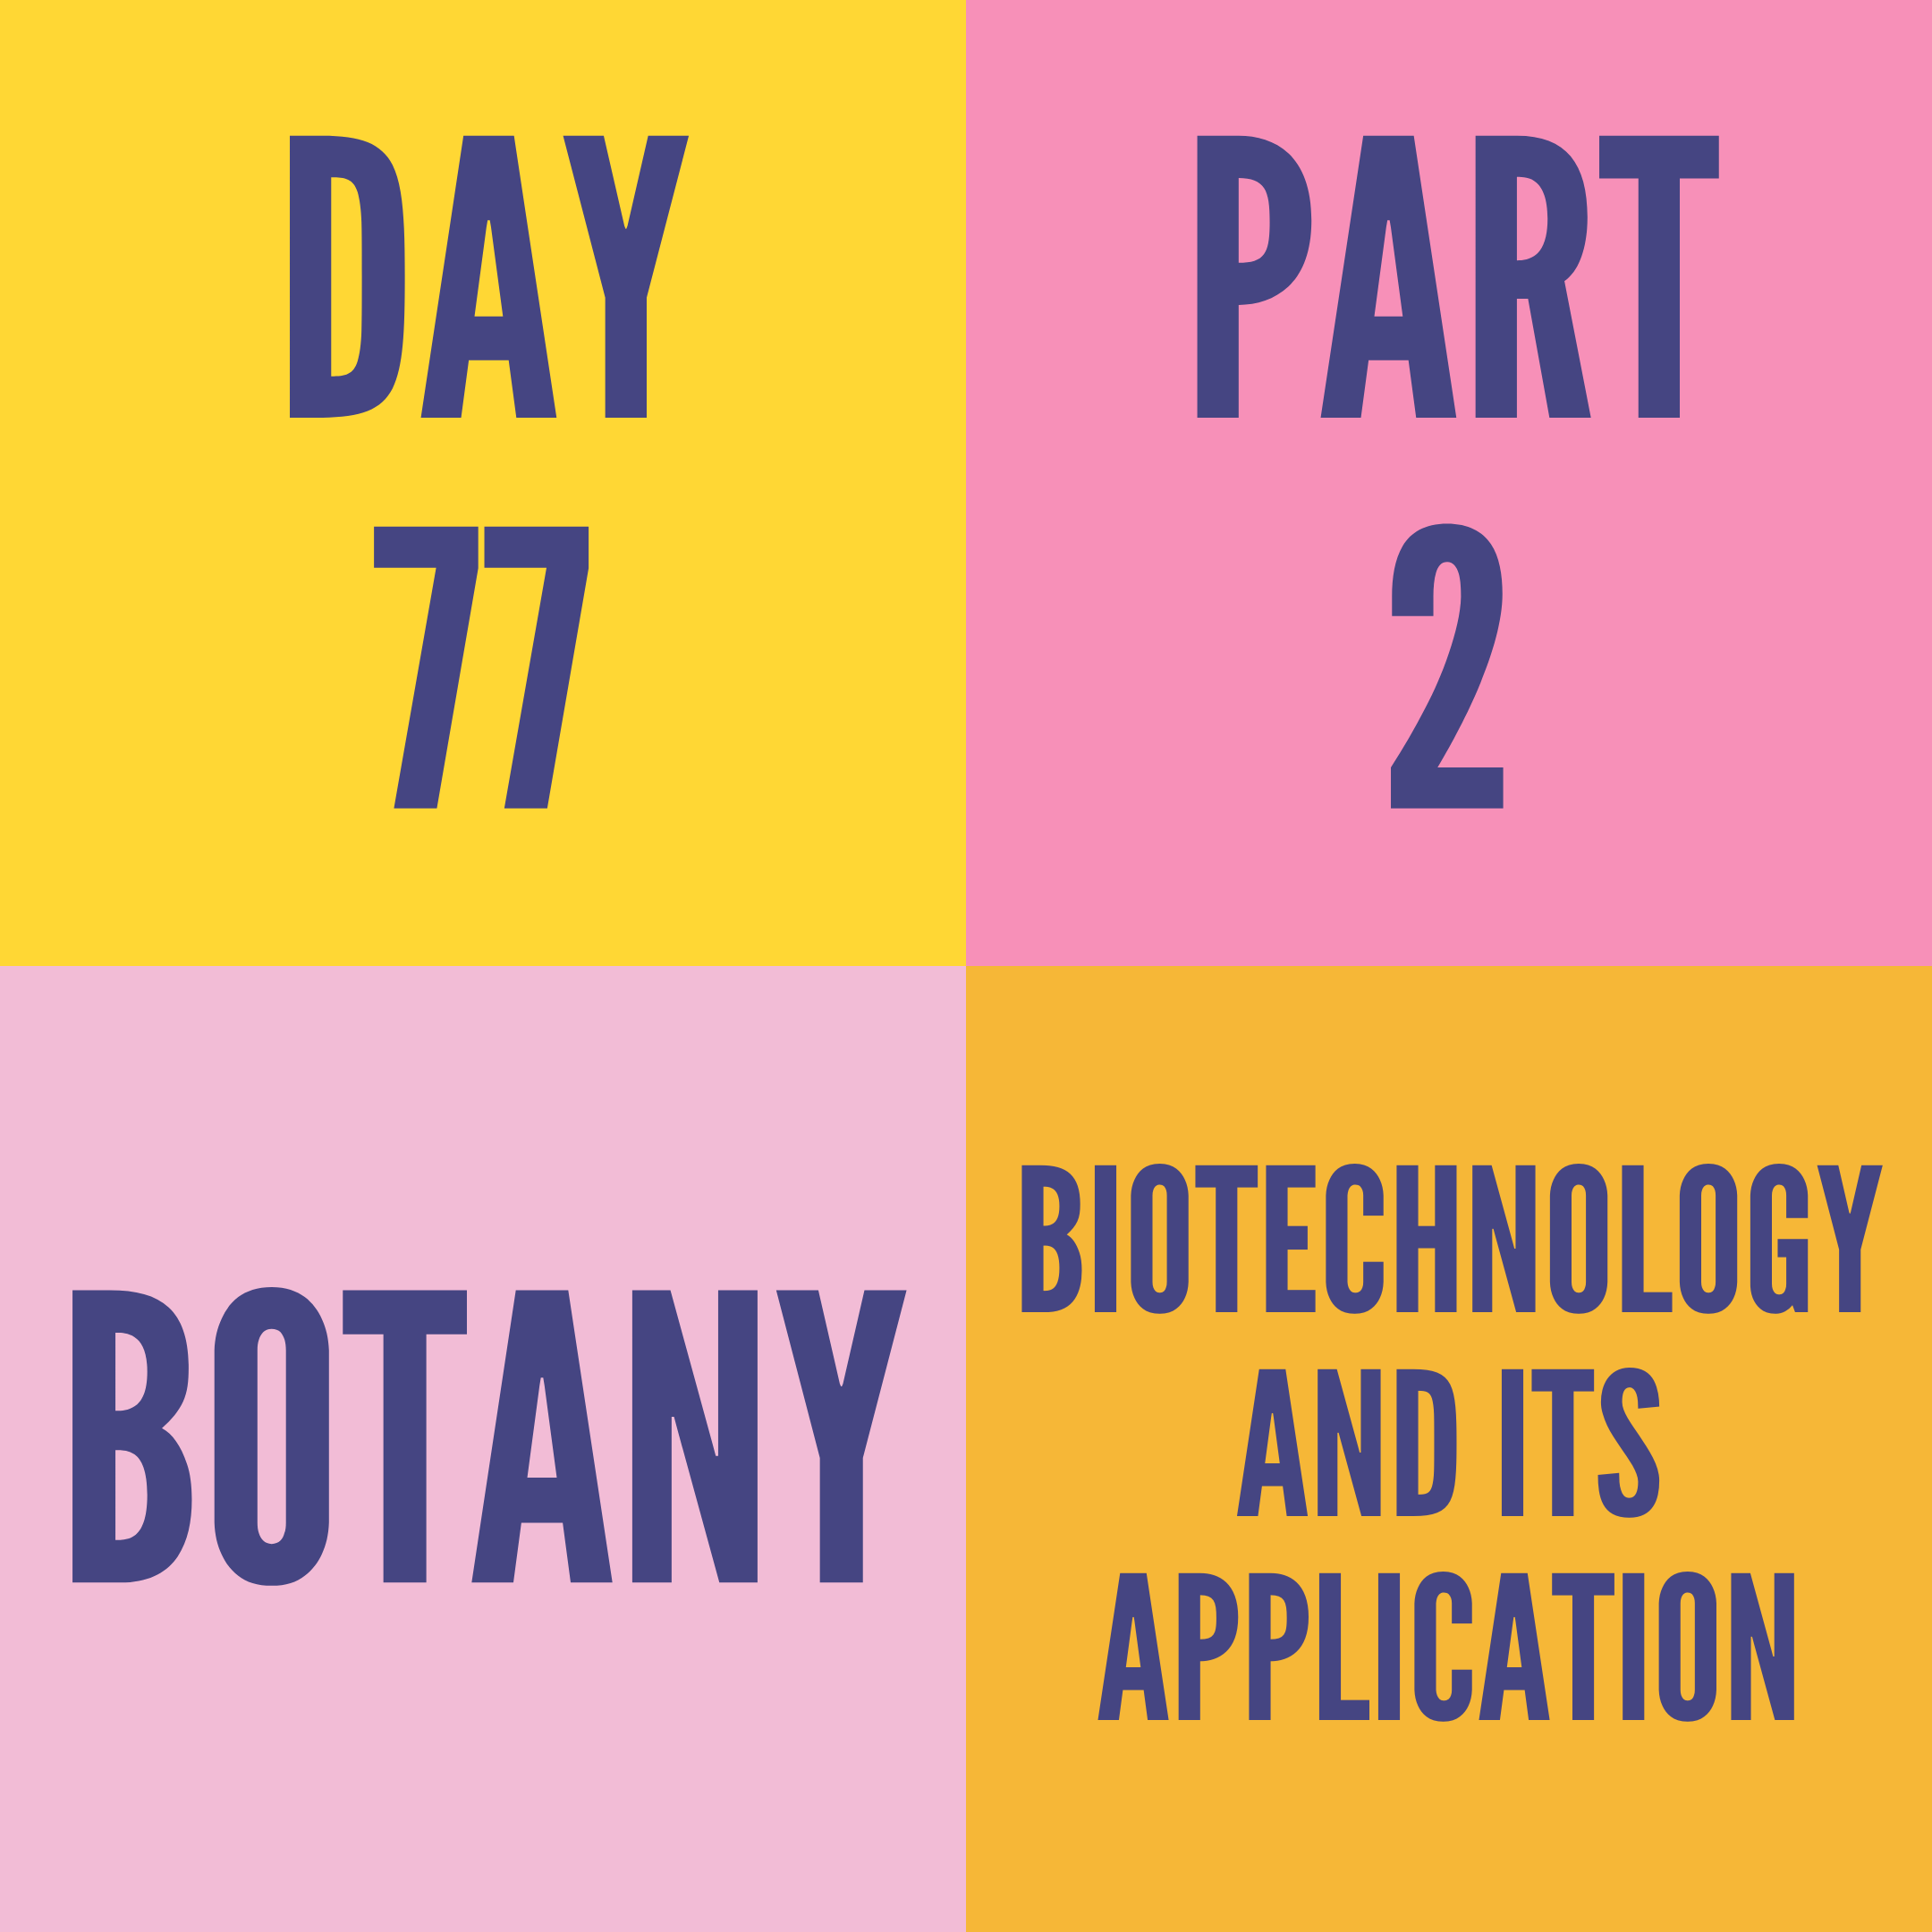 DAY-77 PART-2 BIOTECHNOLOGY AND ITS APPLICATION